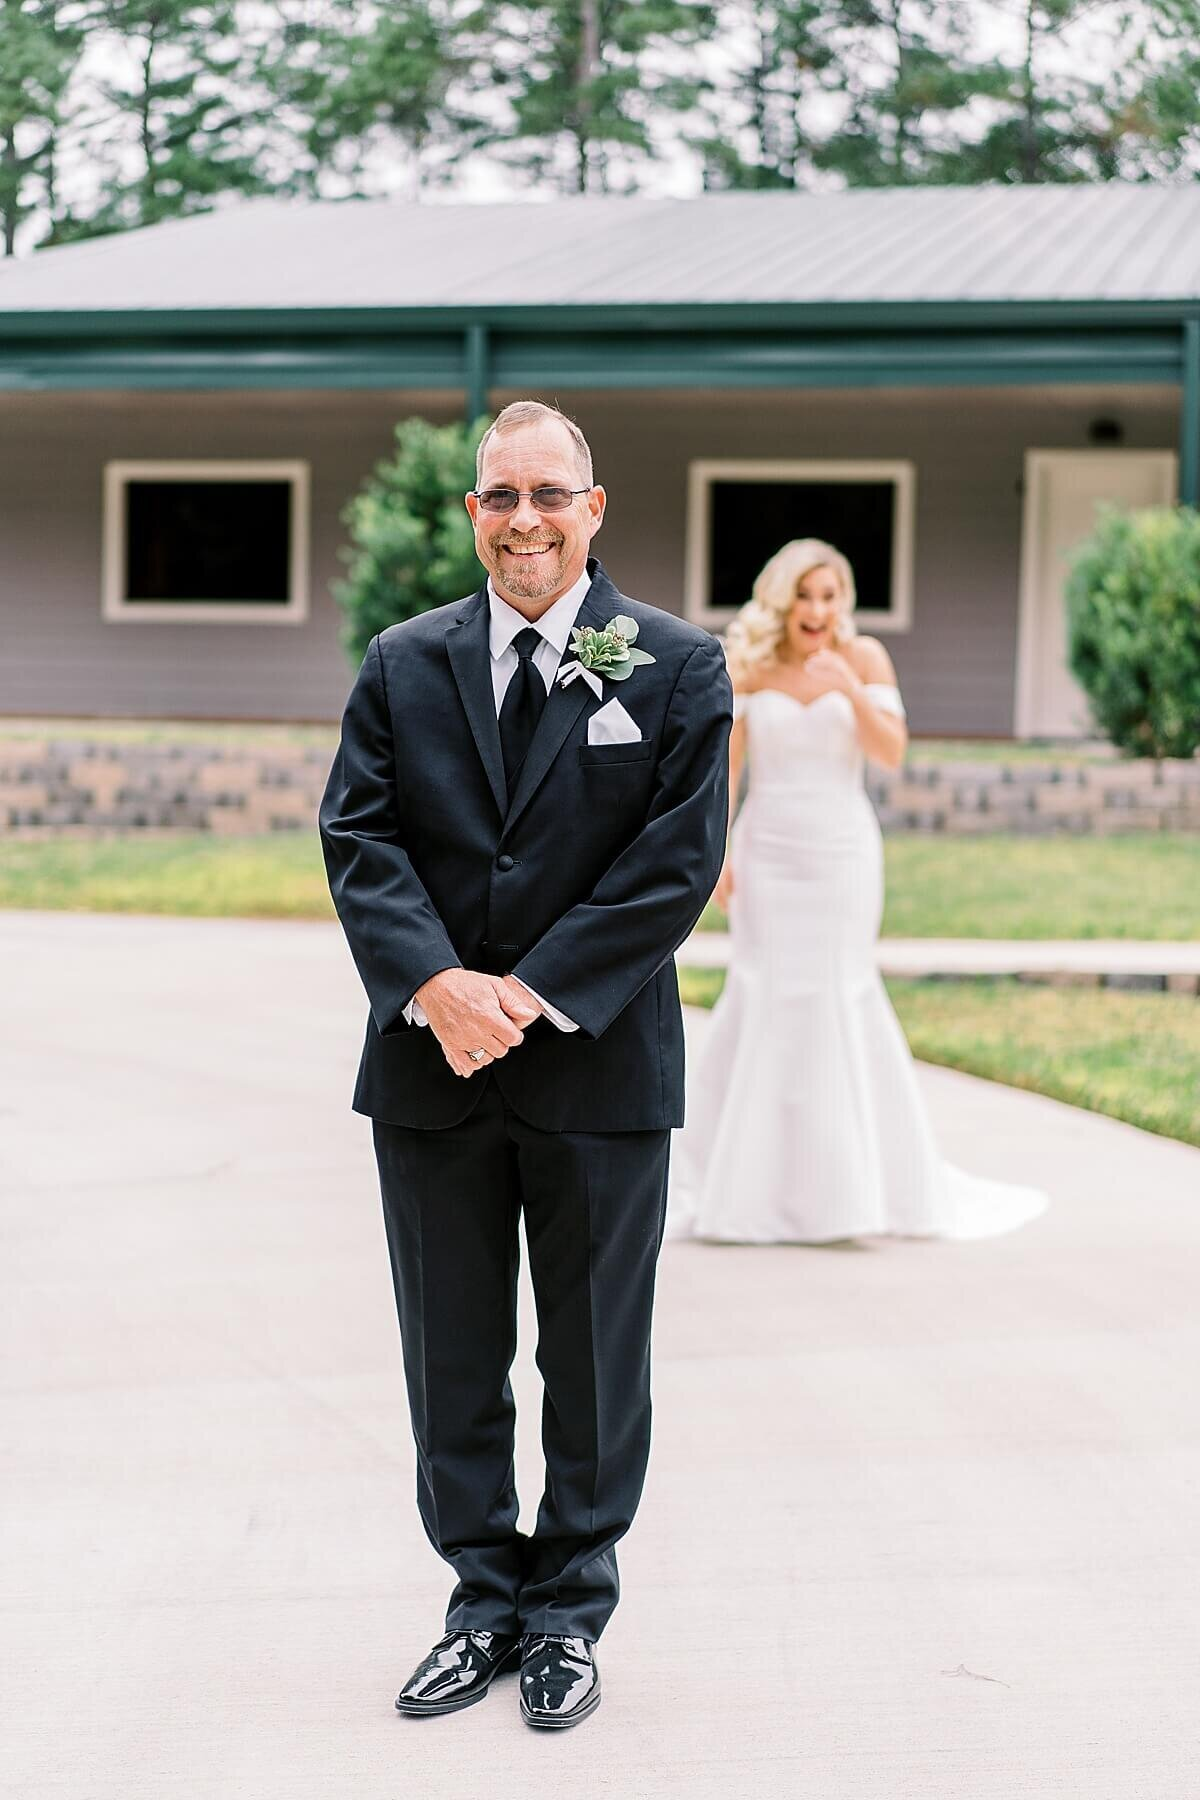 Father Daughter first look at the Annex Wedding Venue photographed by Alicia Yarrish Photography